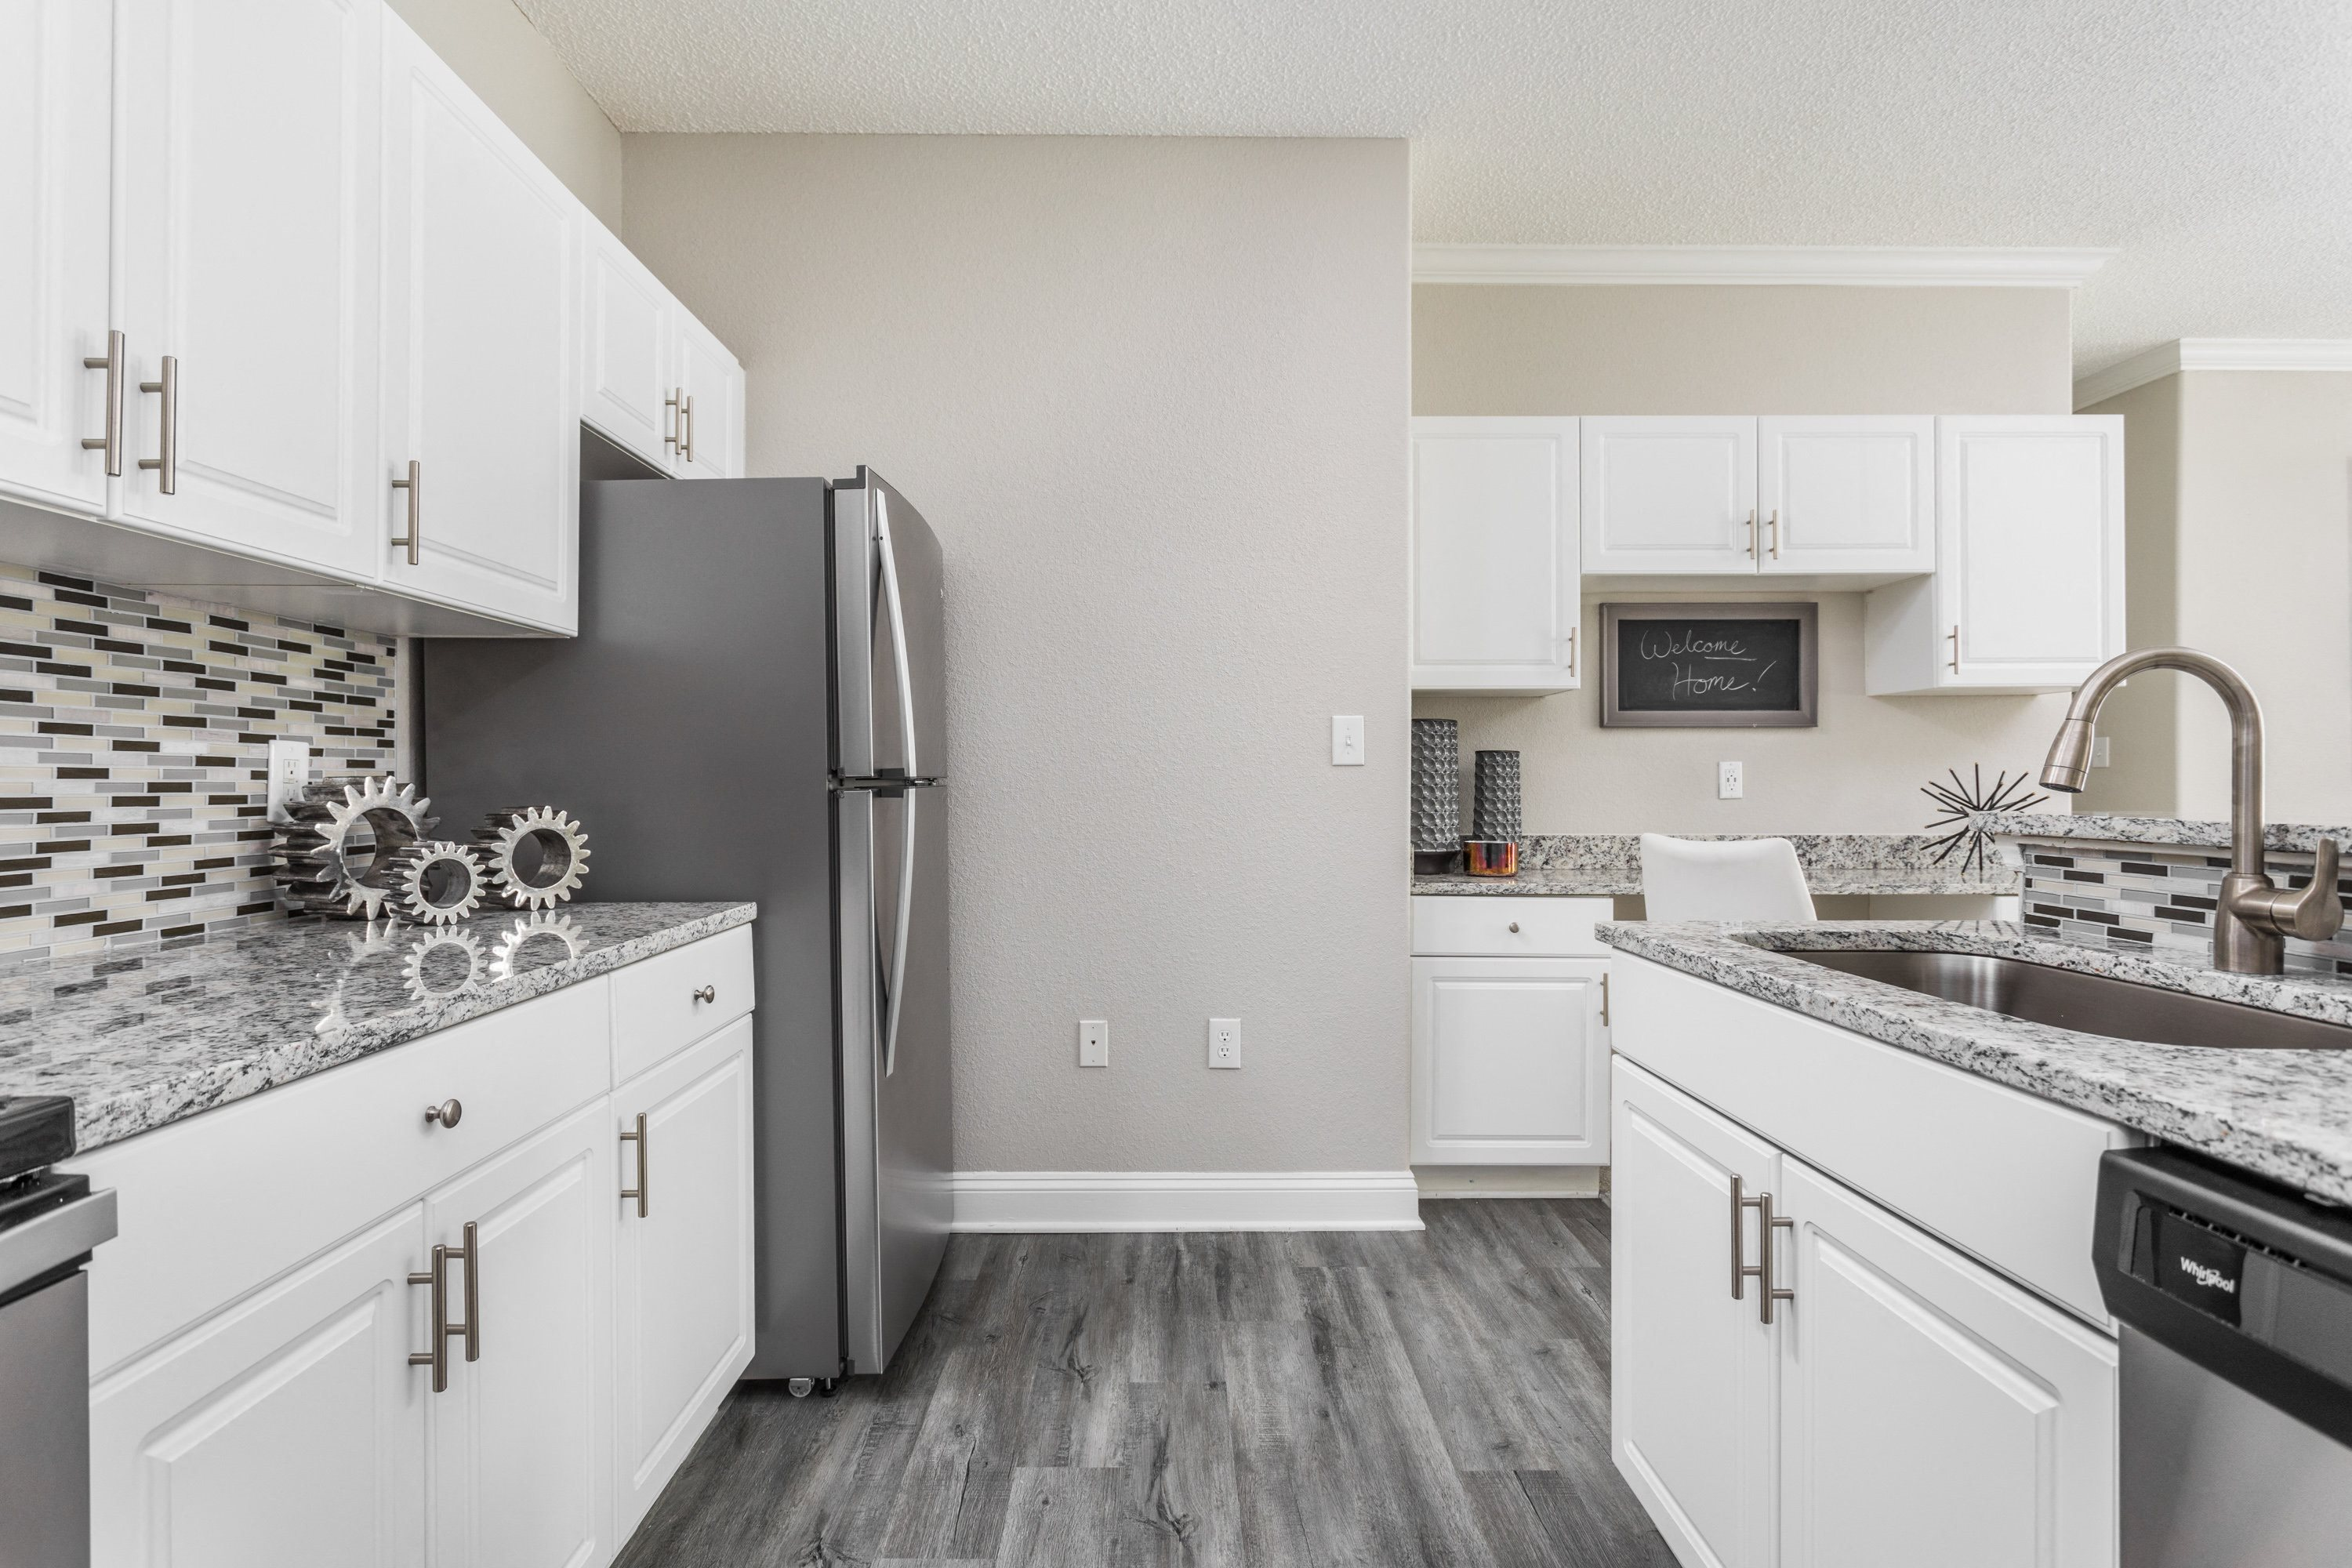 Photos and Video of The Village at Auburn Apartments in Durham, NC